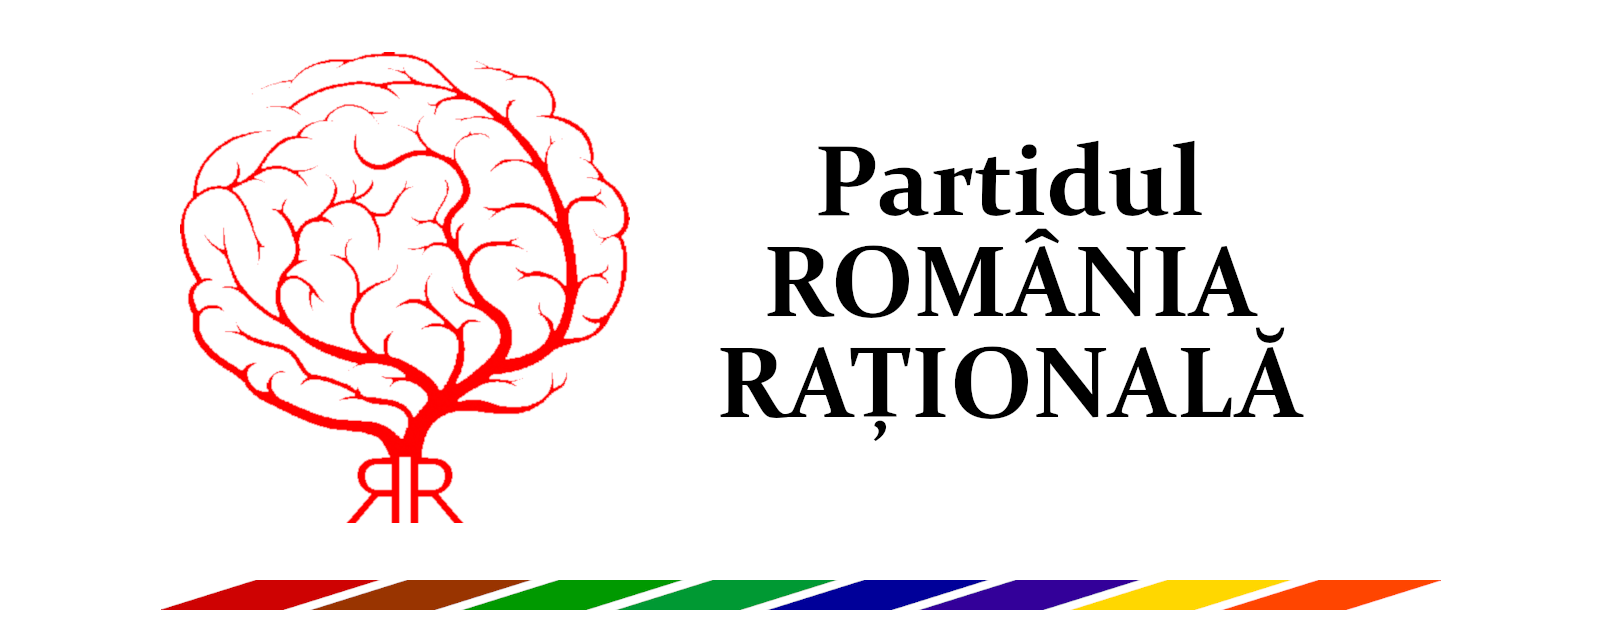 https://ziarul.romania-rationala.ro/control/articole/articole/partidul-romania-rationala-cover-1602x630_3.png